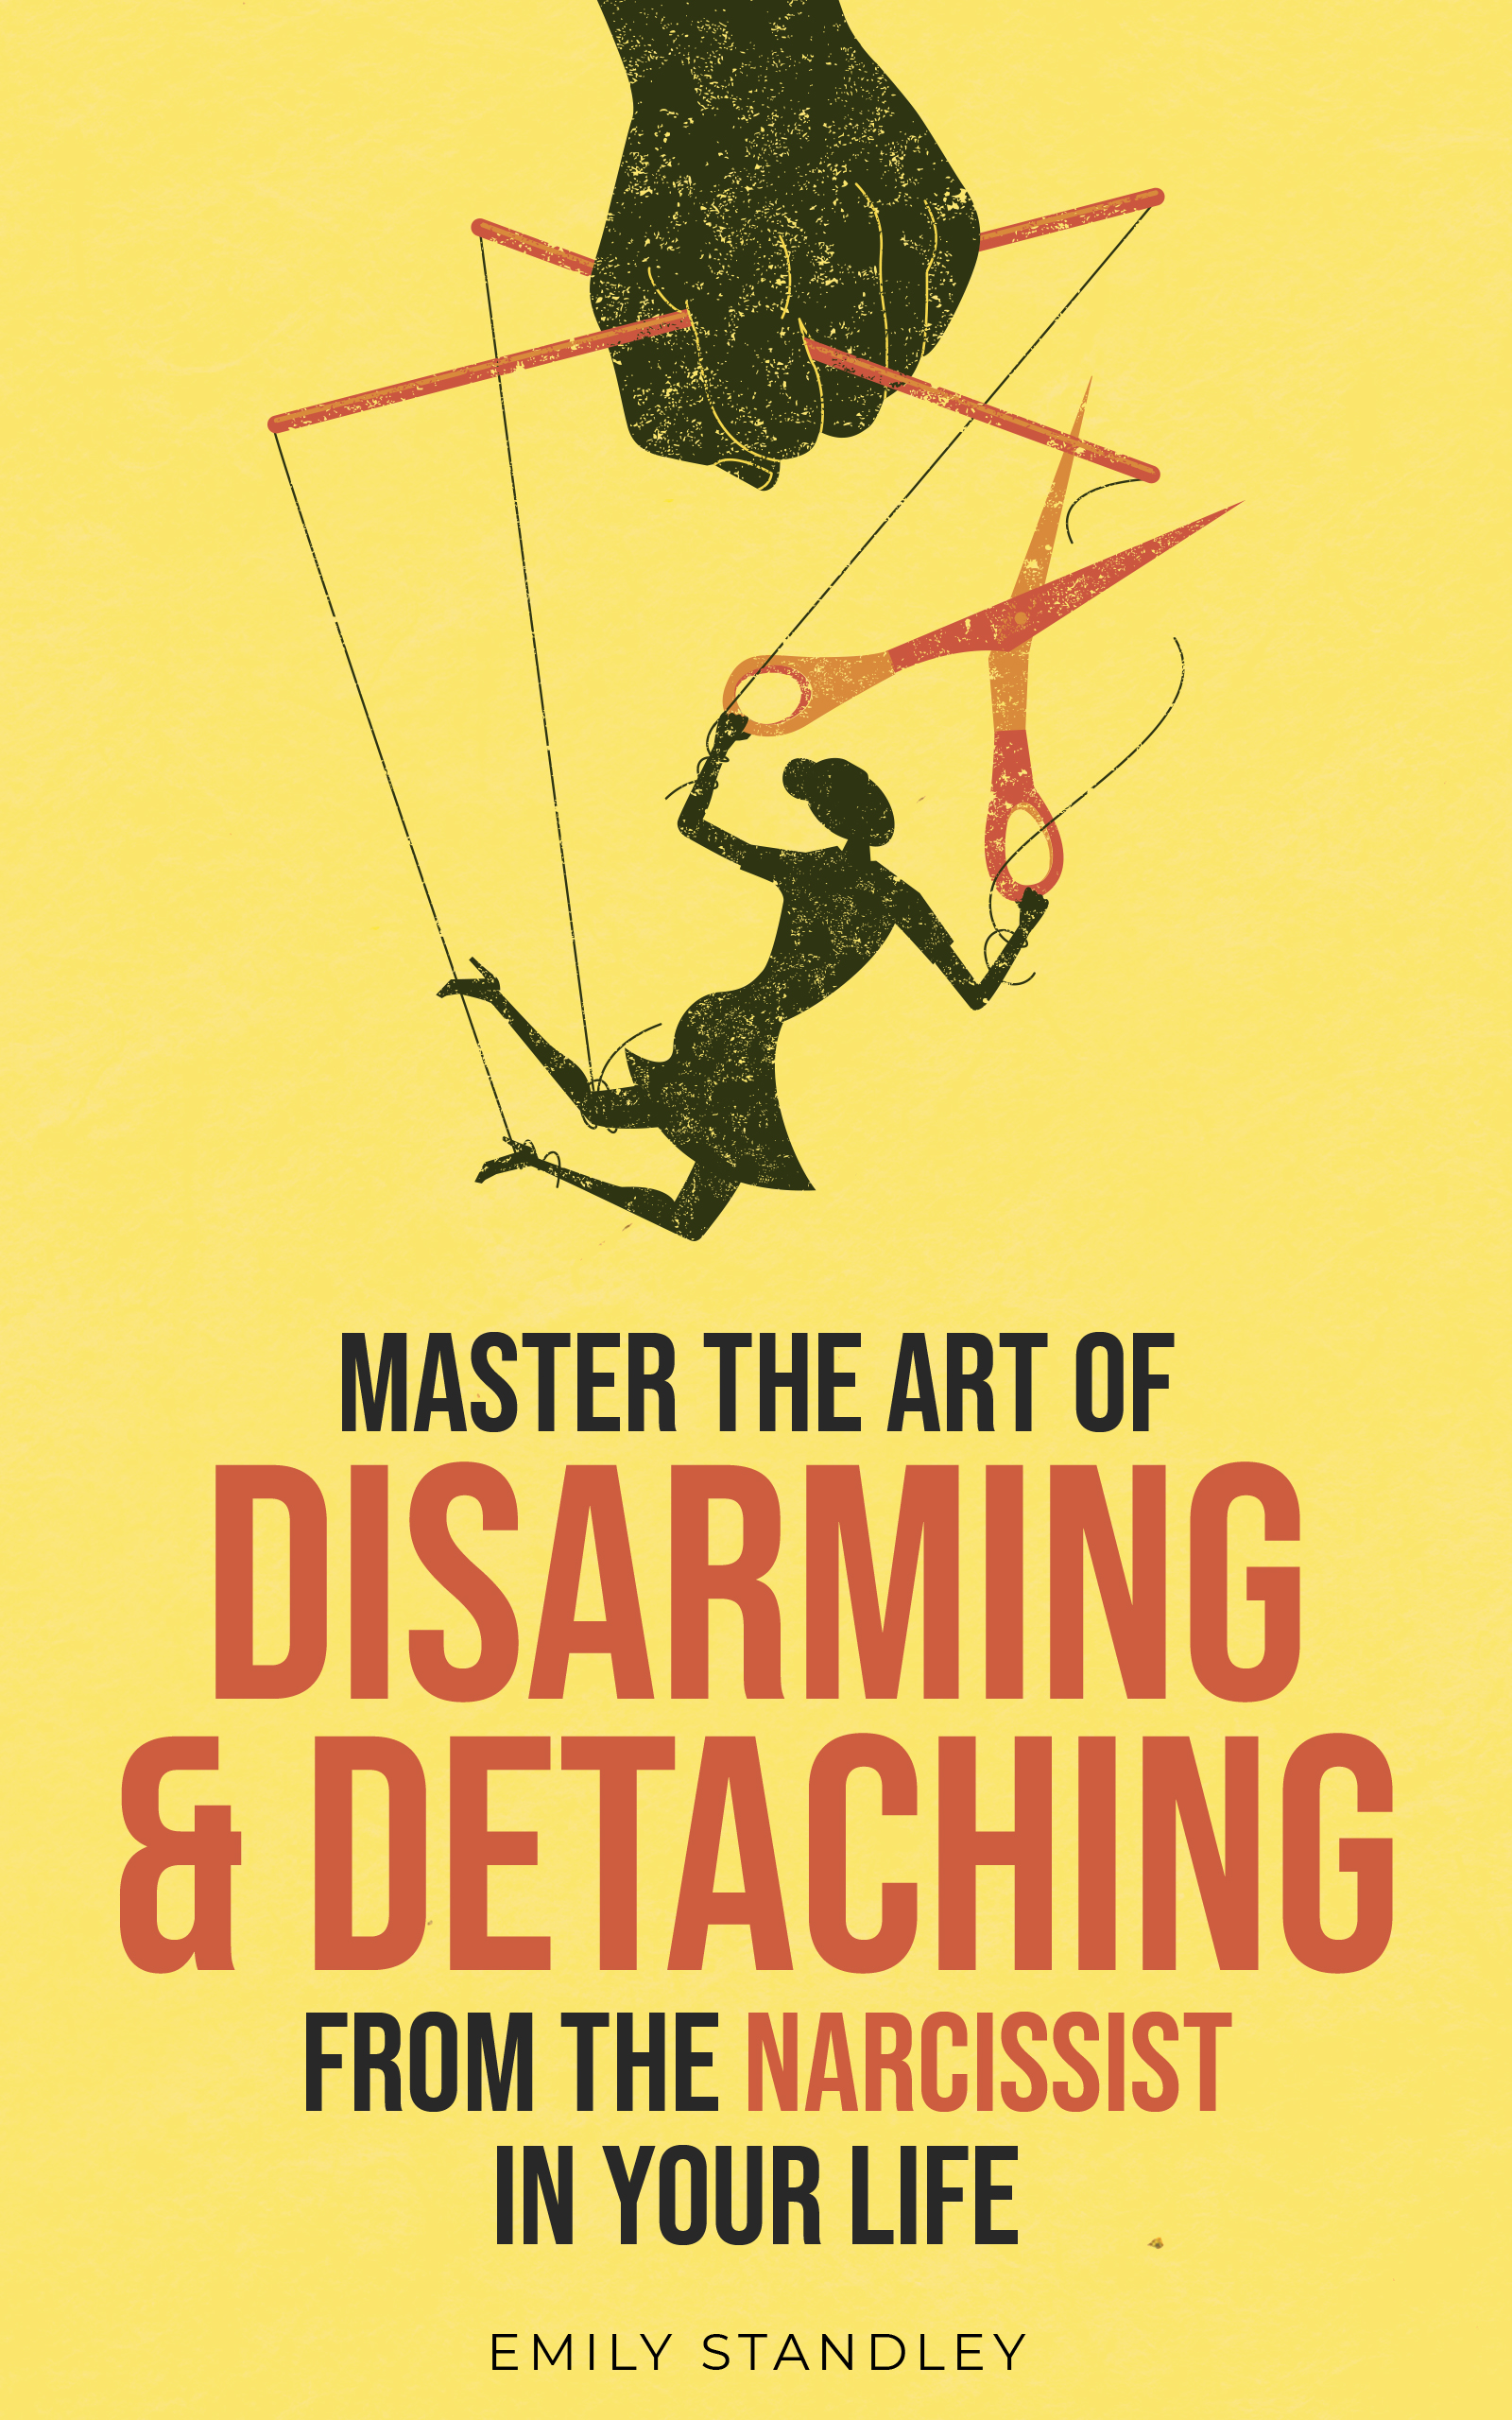 the art of disarming and detaching from the narcissist